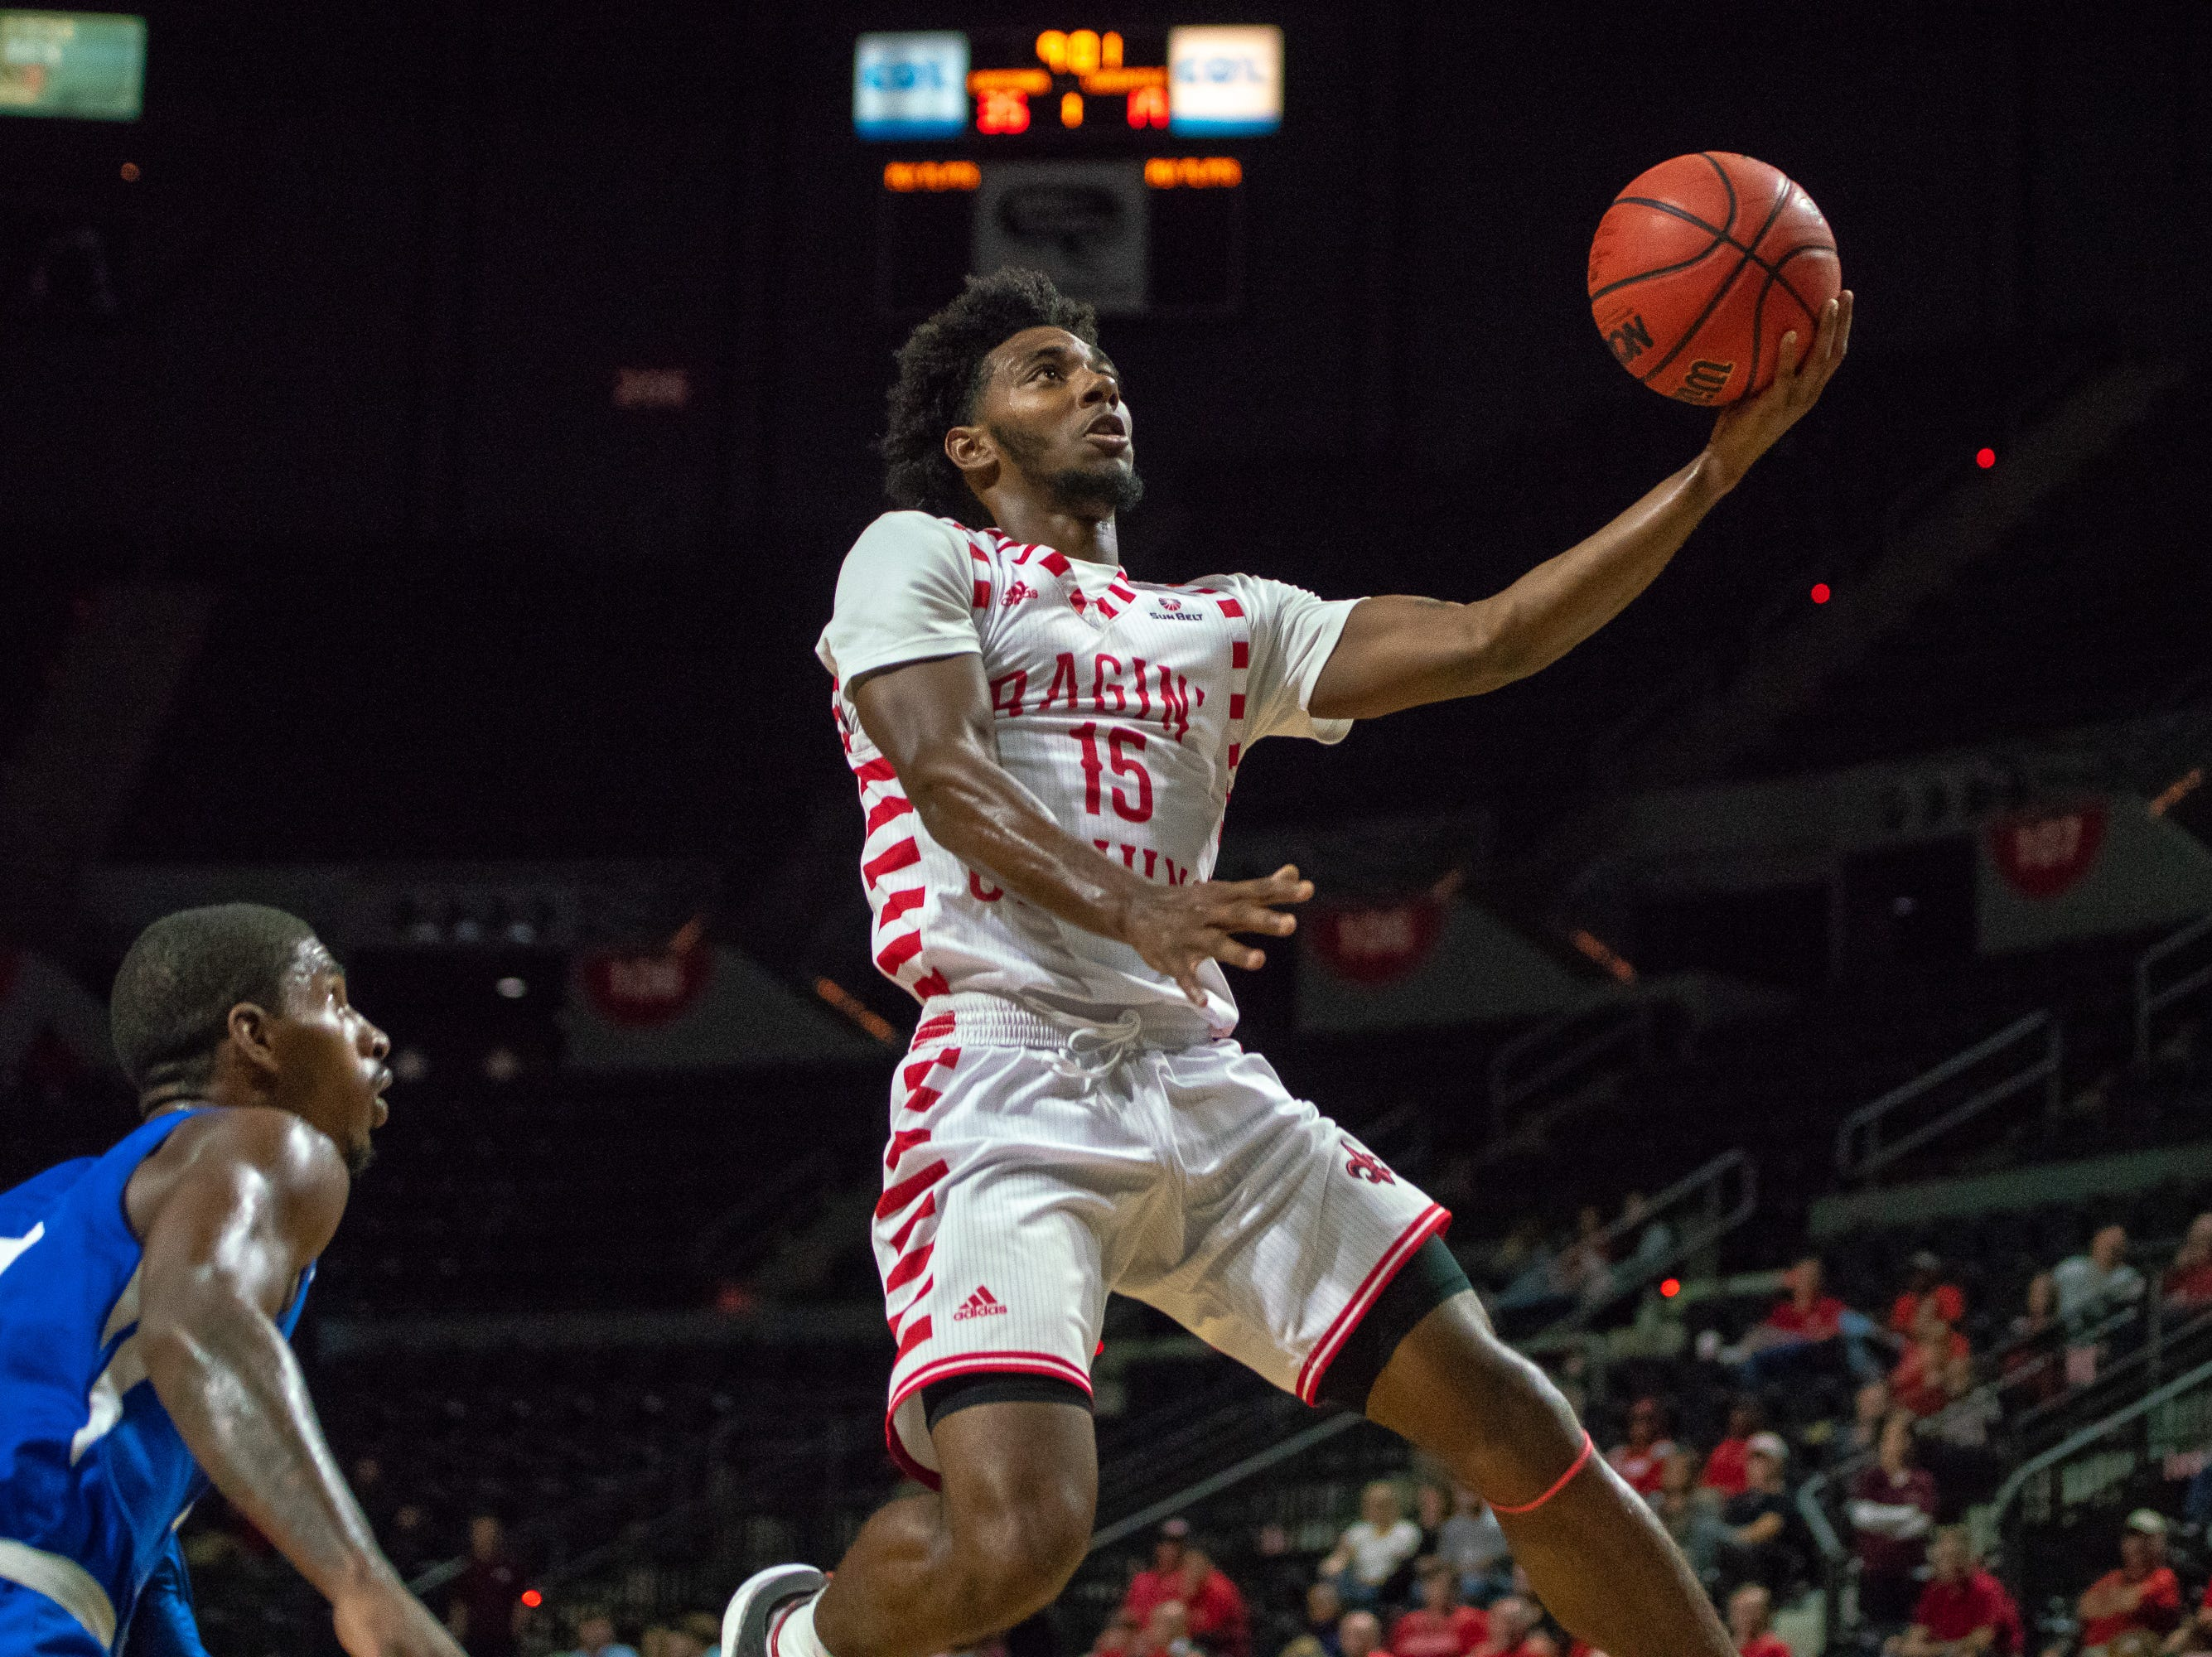 UL's P.J. Hardy goes up to score a layup as the Ragin' Cajuns take on the University of the Virgin Islands Buccaneers at the Cajundome on Nov. 6, 2018.